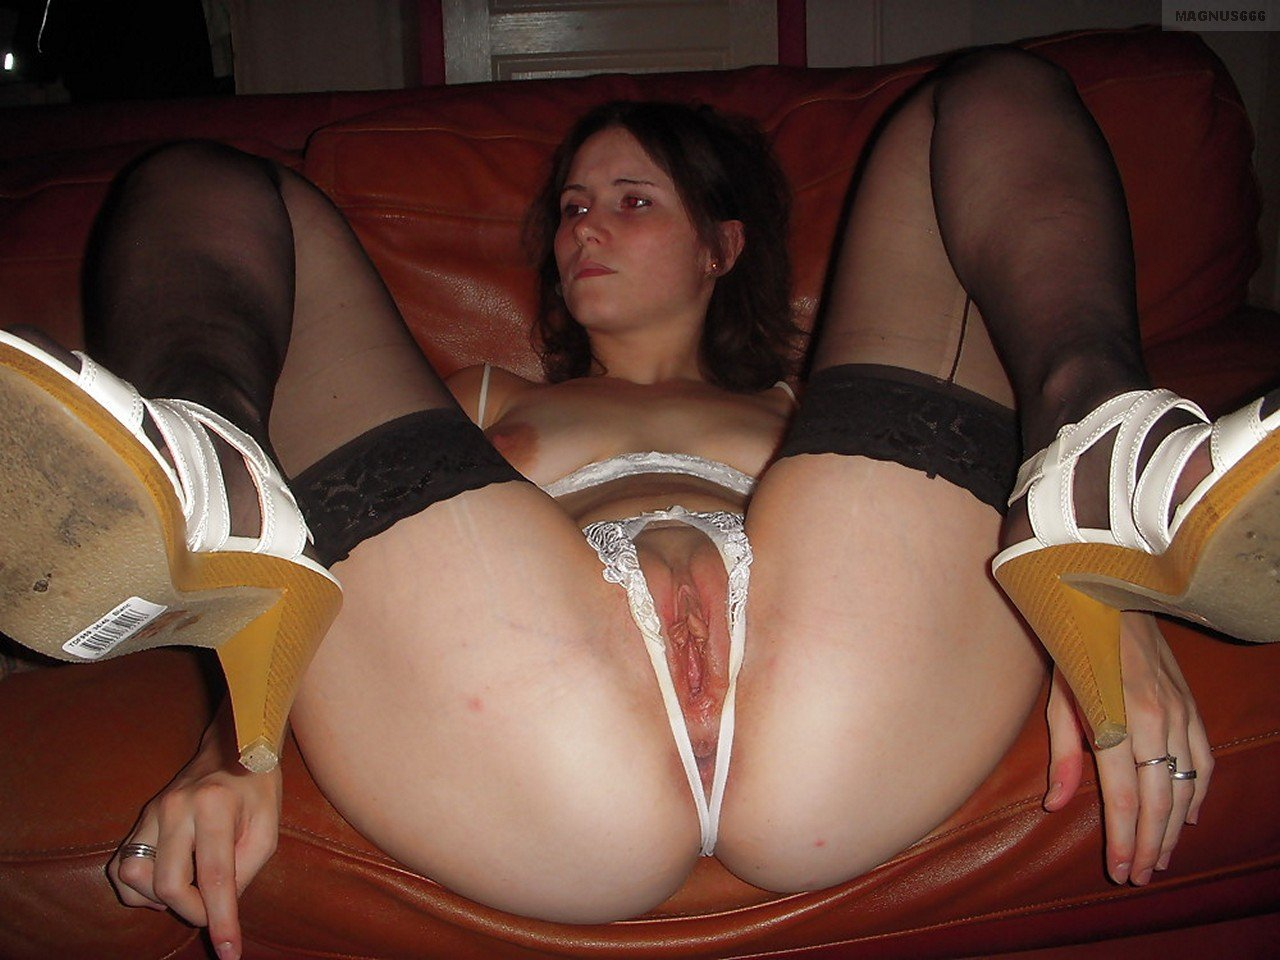 Mature creampie stockings #9